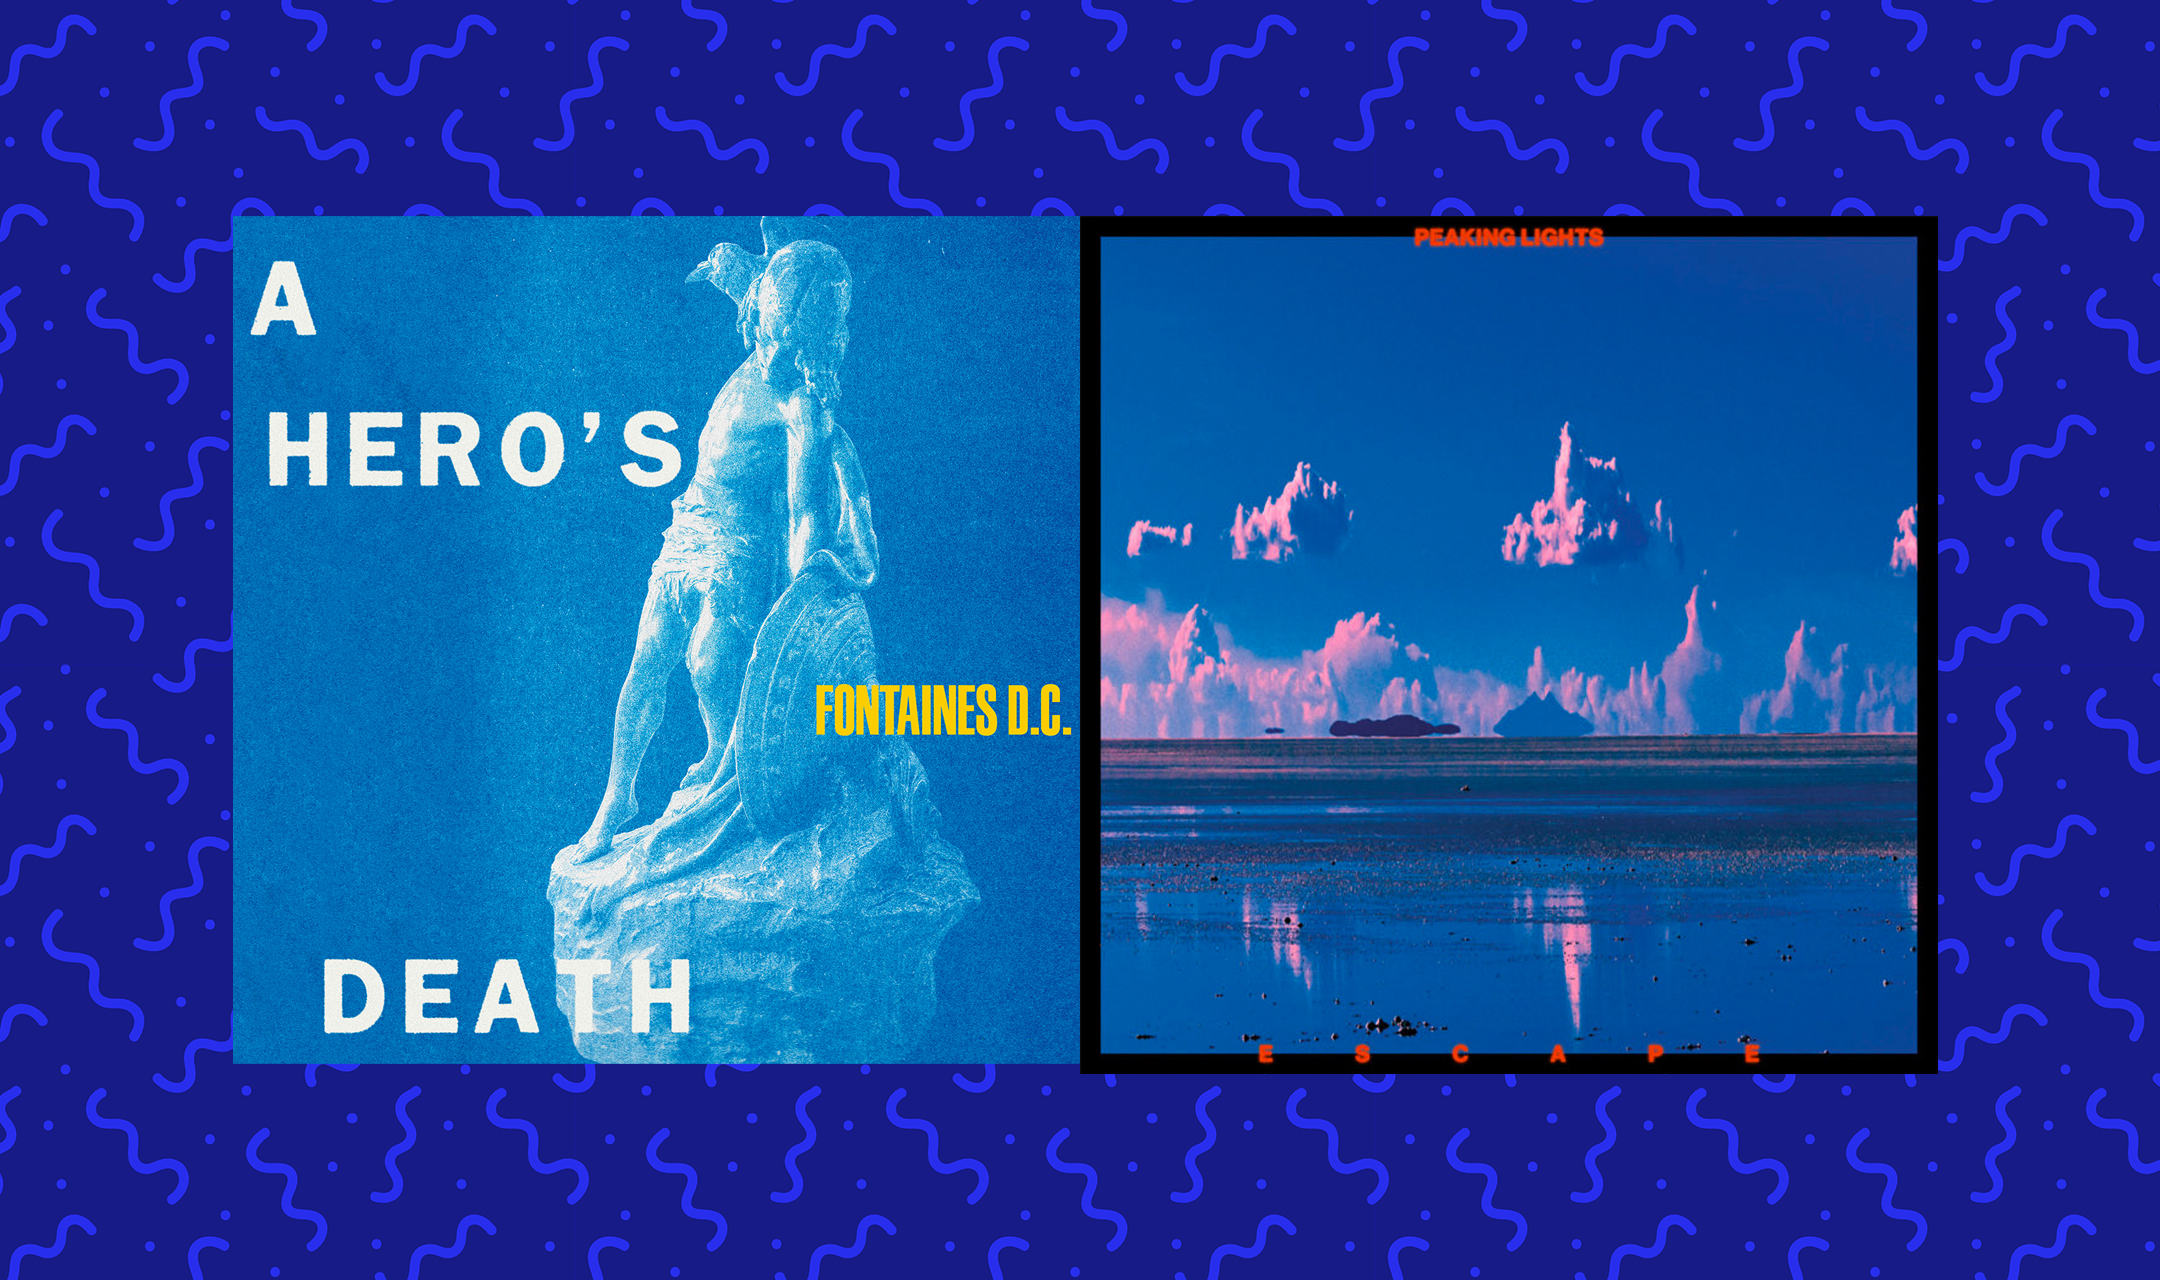 New Albums Released this week: Fontaines D.C., Beyoncé visual album, Rival Consoles, Romare, Peaking Lights, Max Richter & more